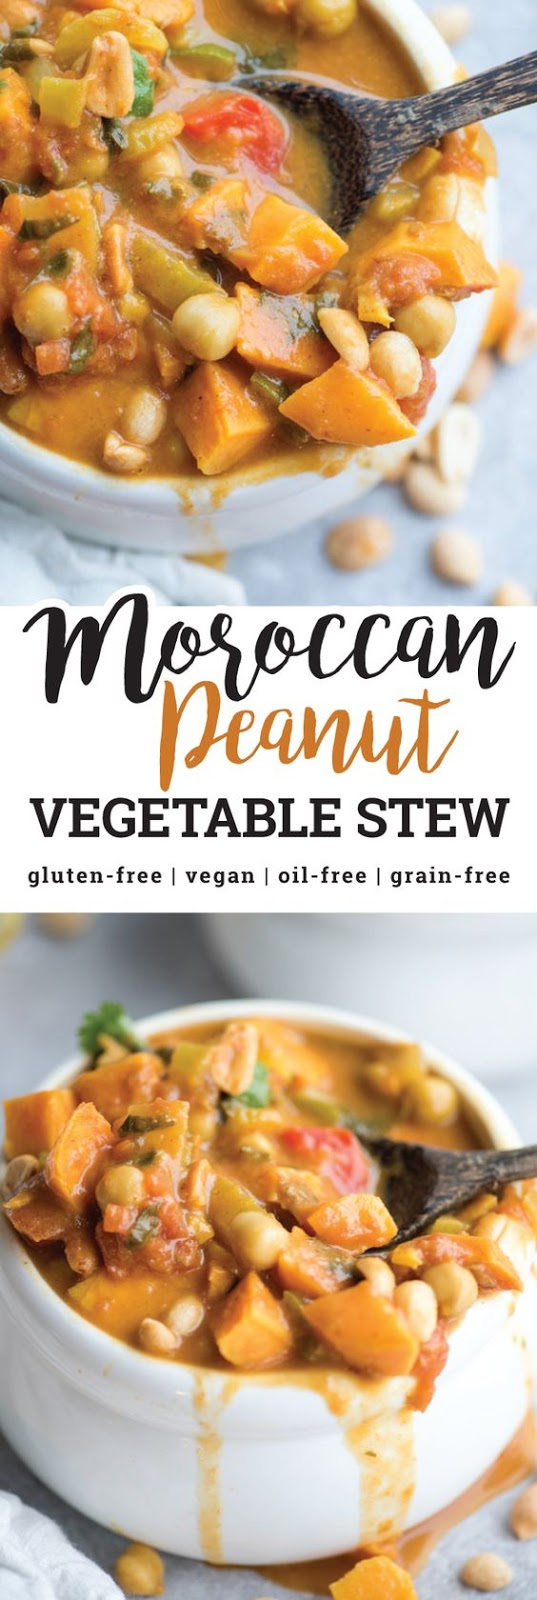 vegan sweet potato peanut stew